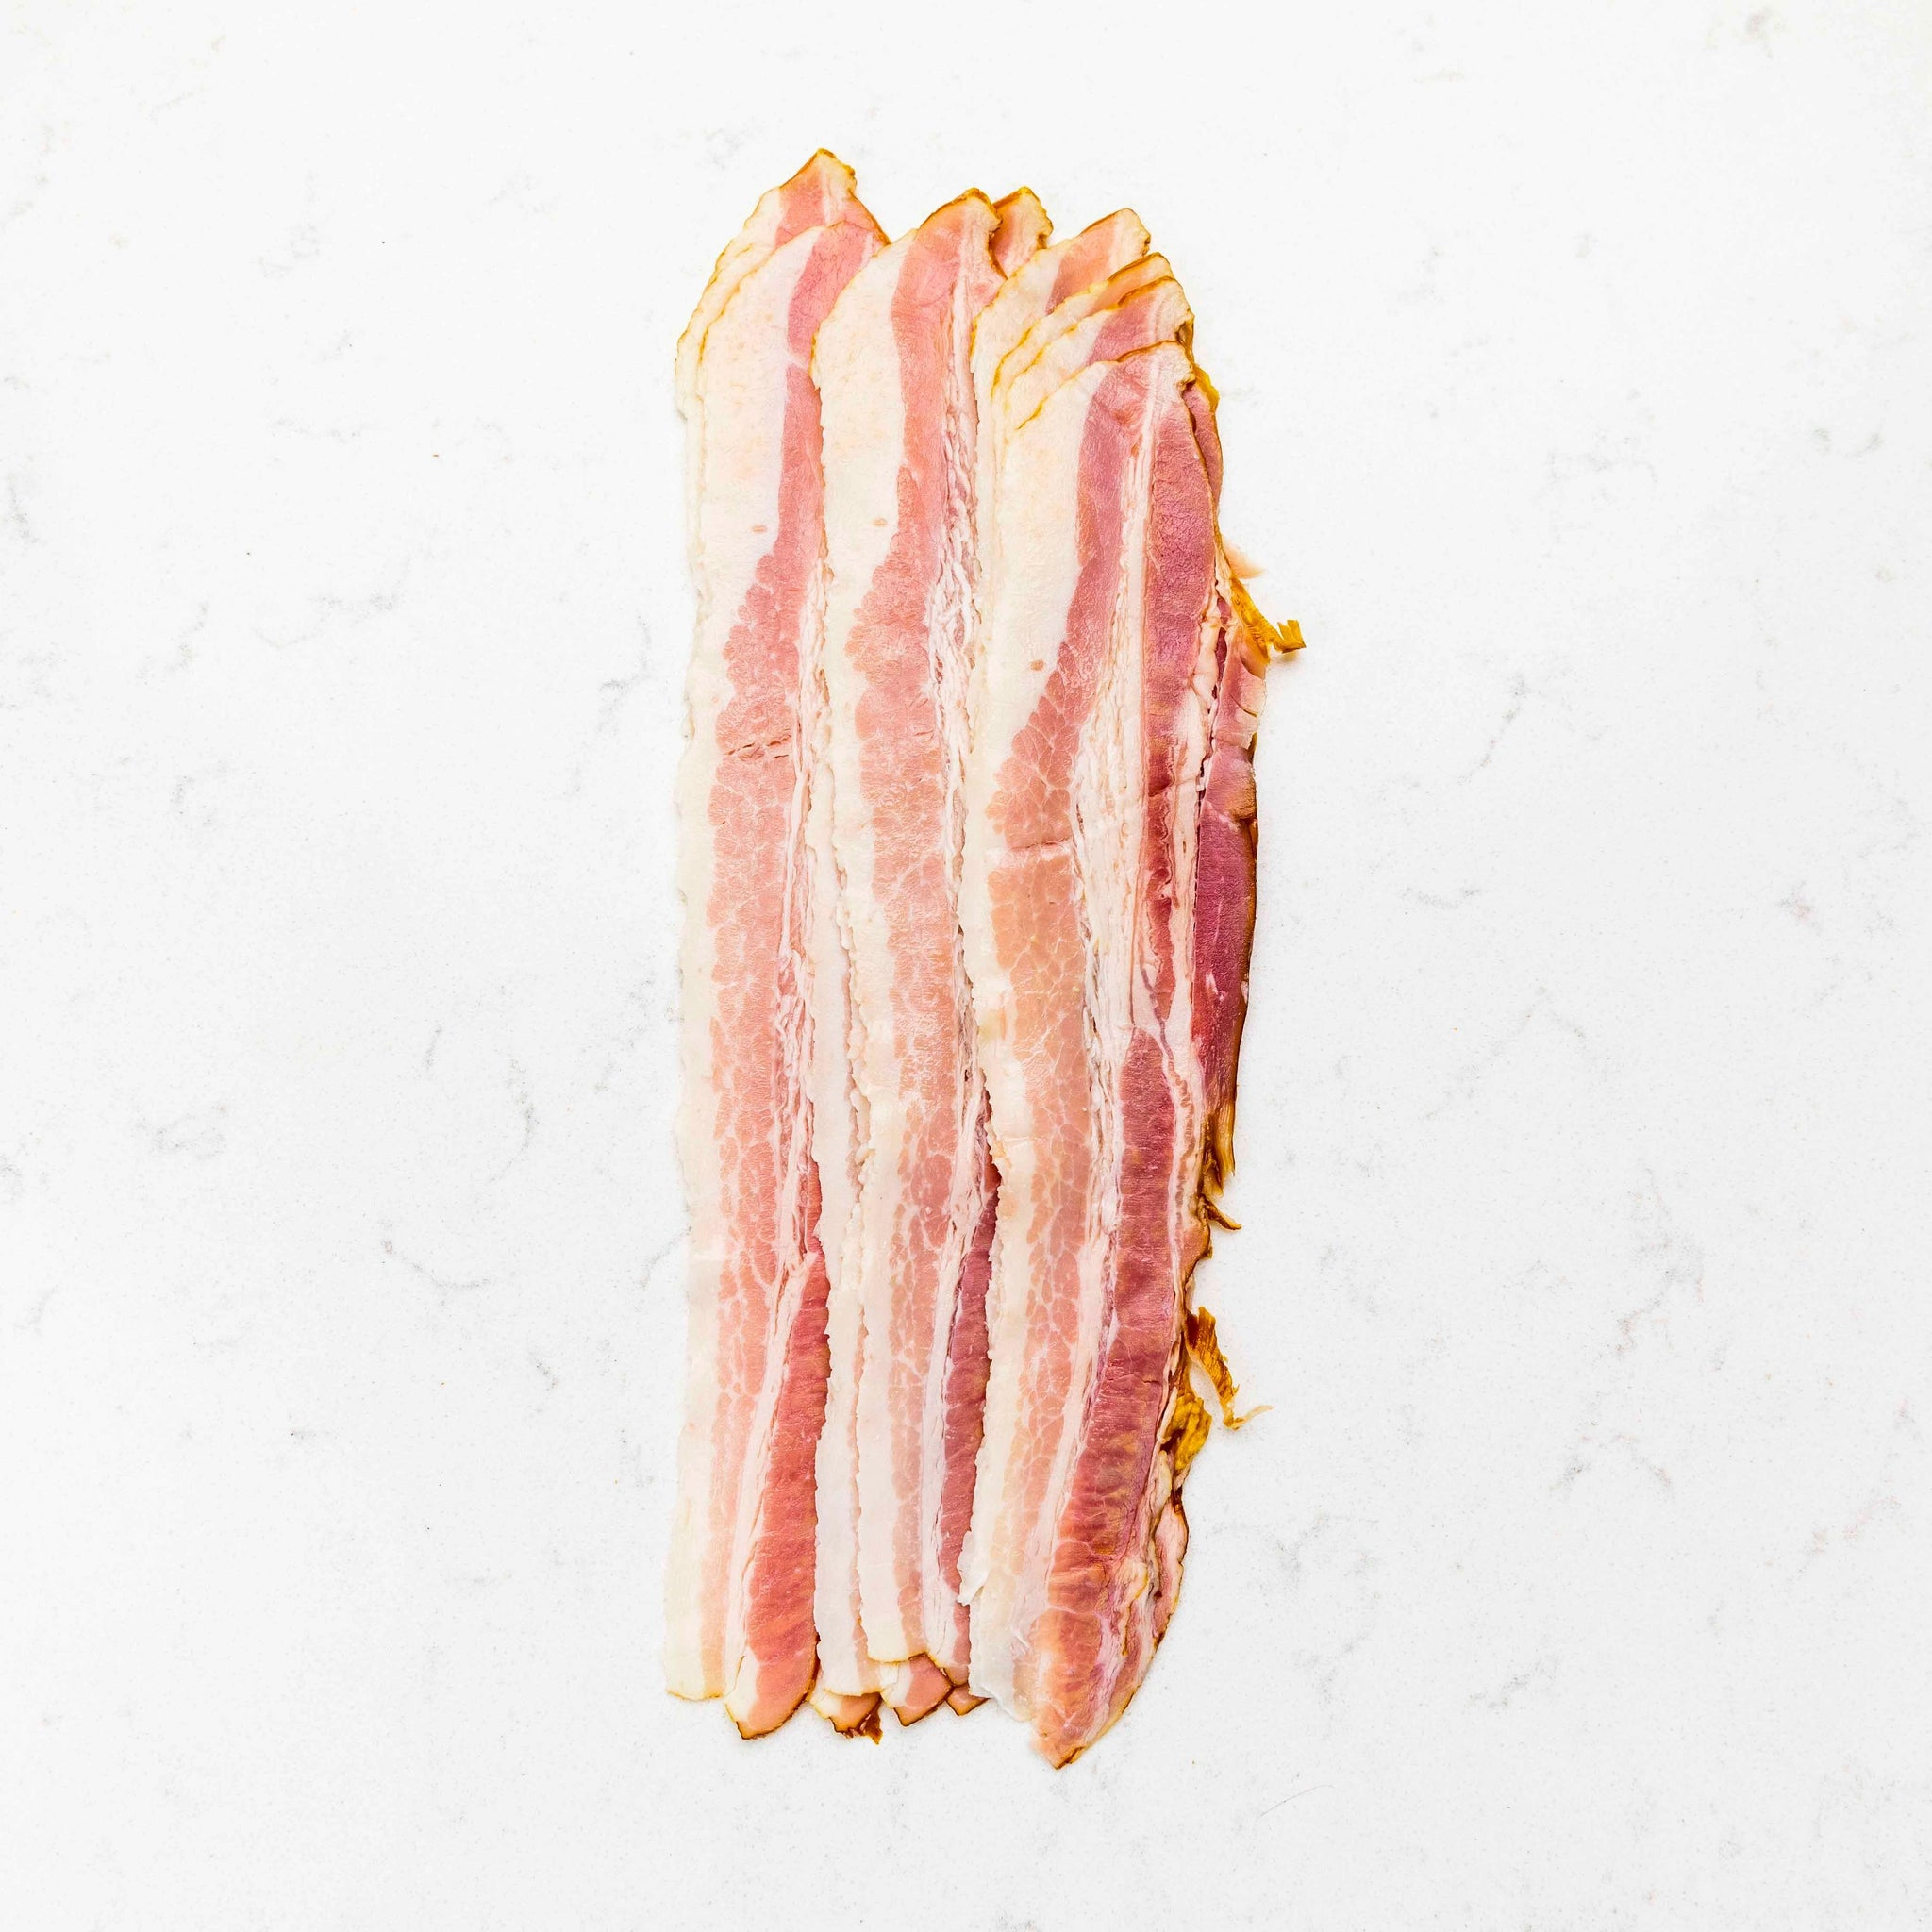 Bacon Streaky Natural 250g